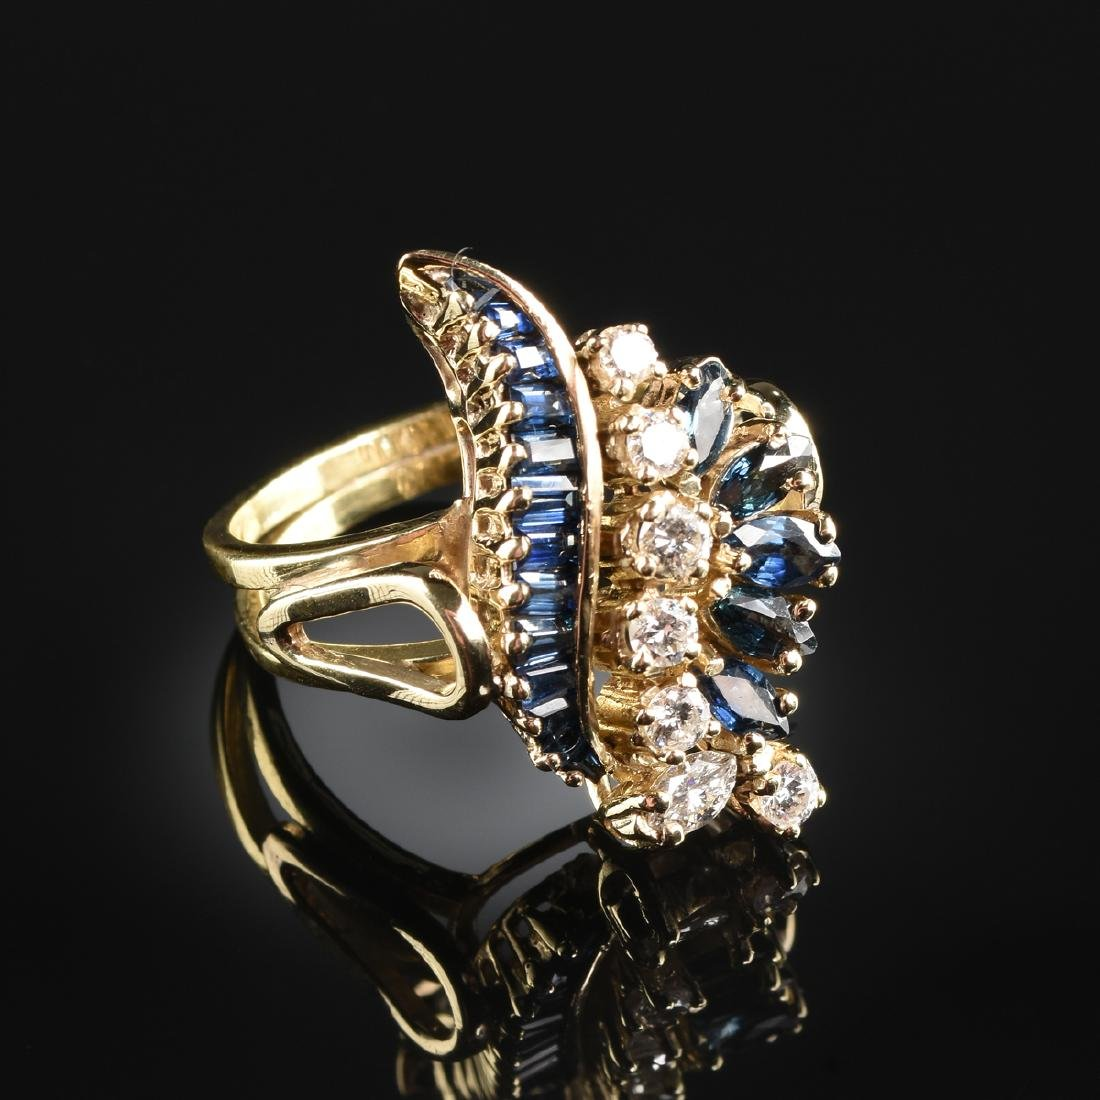 AN 18K YELLOW GOLD, DIAMOND, AND SAPPHIRE LADY'S RING,